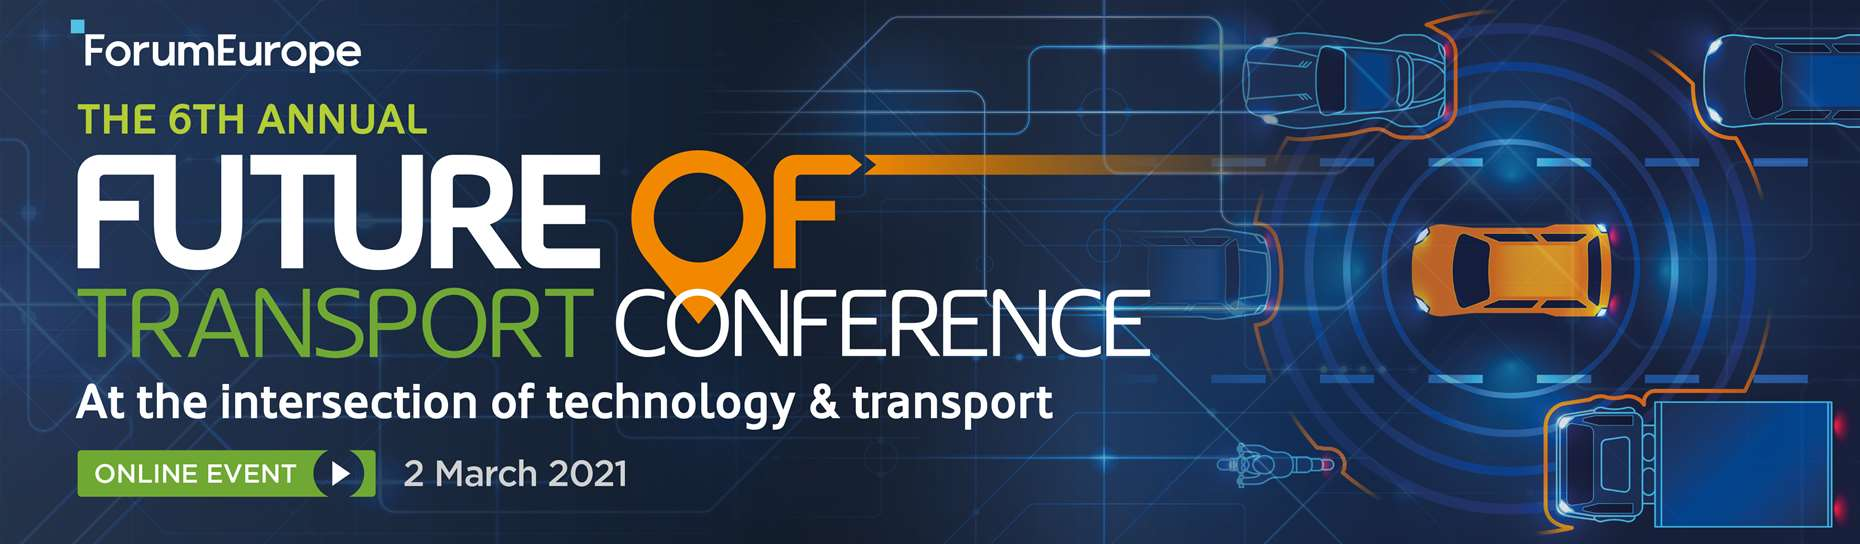 The 6th Annual Future of Transport Conference 2021